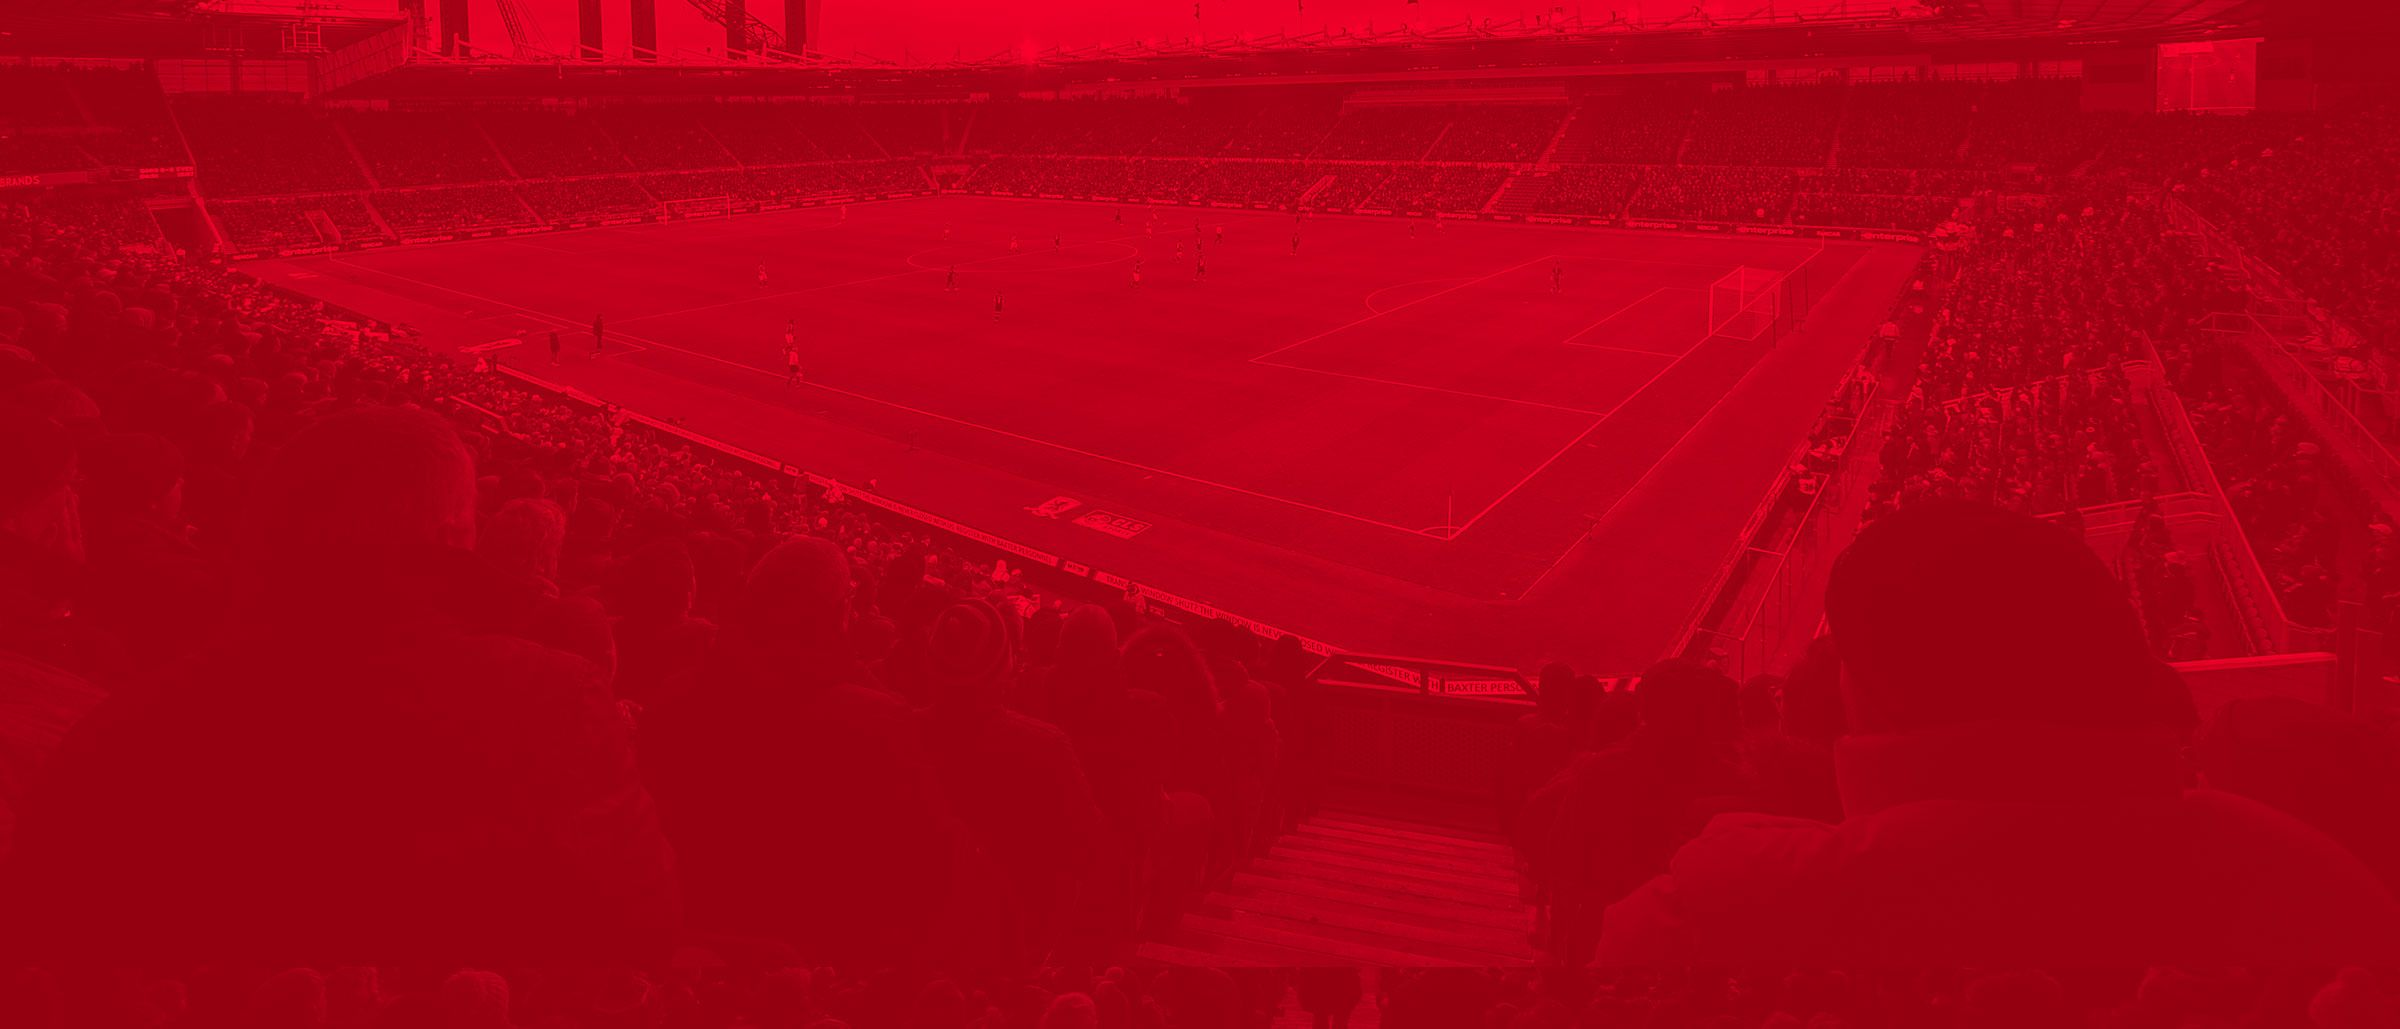 monotone red image of the Riverside Stadium